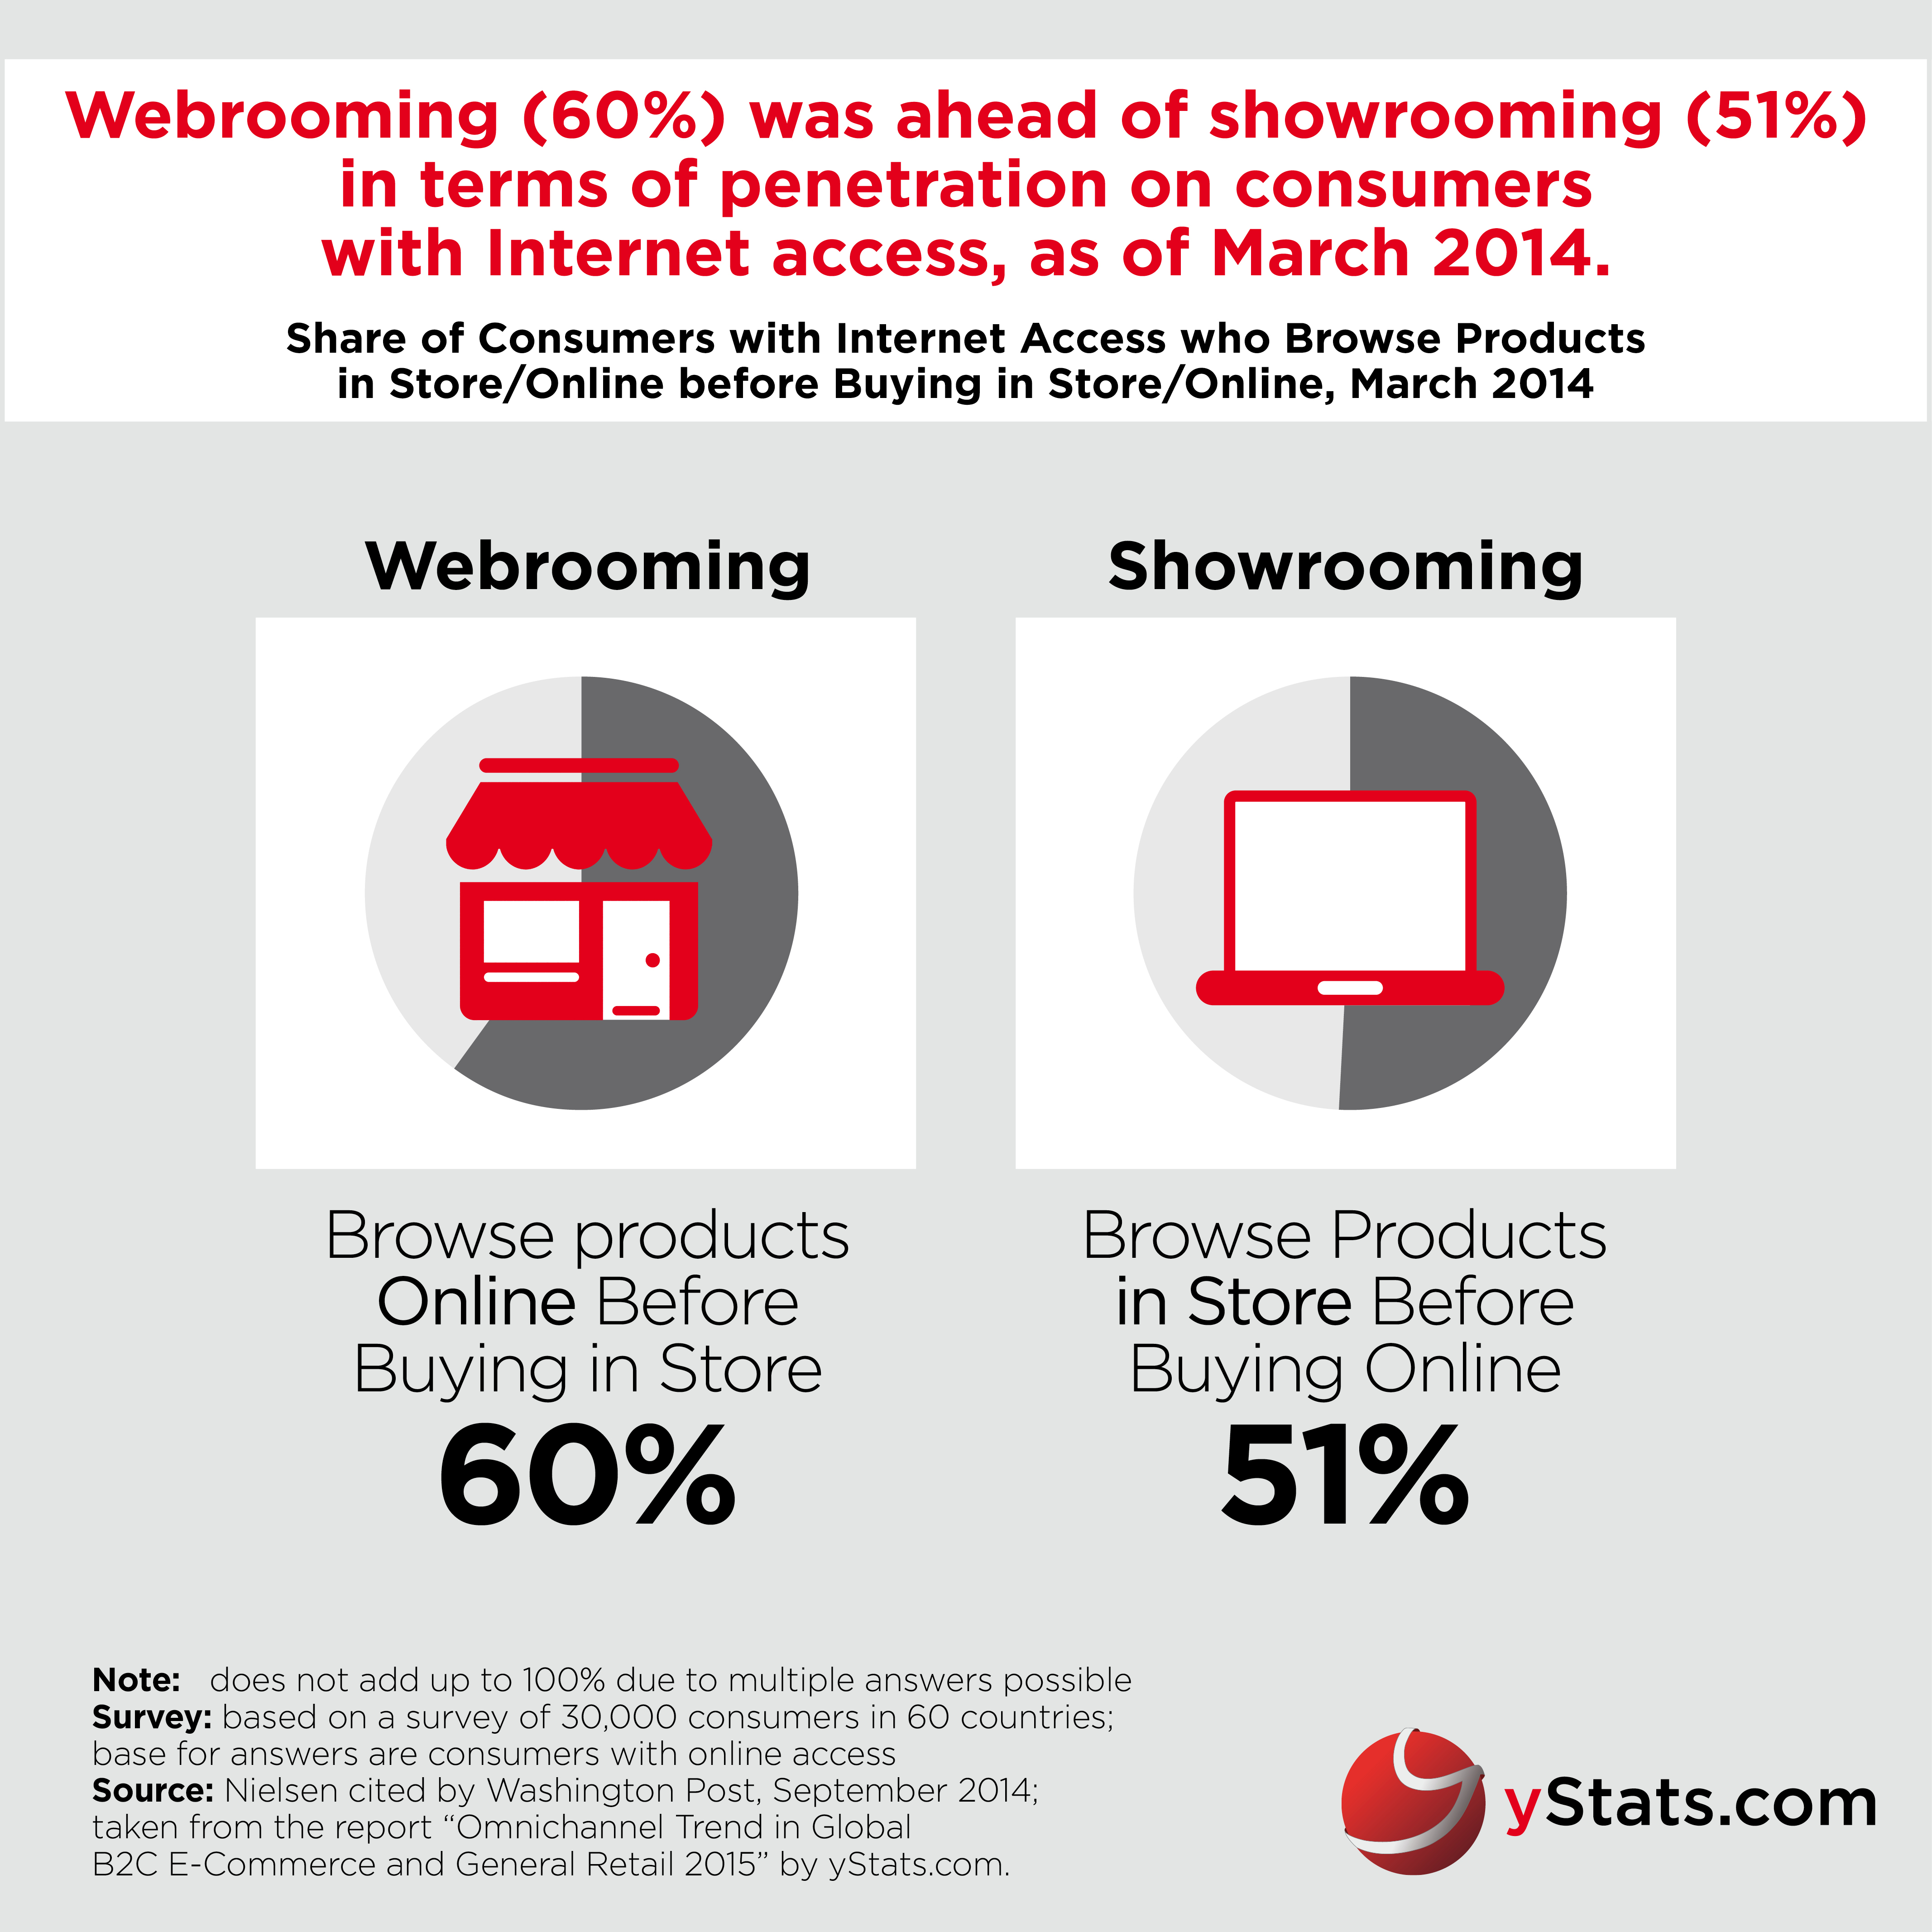 yStats.com Infographic Omnichannel Trend in Global B2C E-Commerce and General Retail 2015